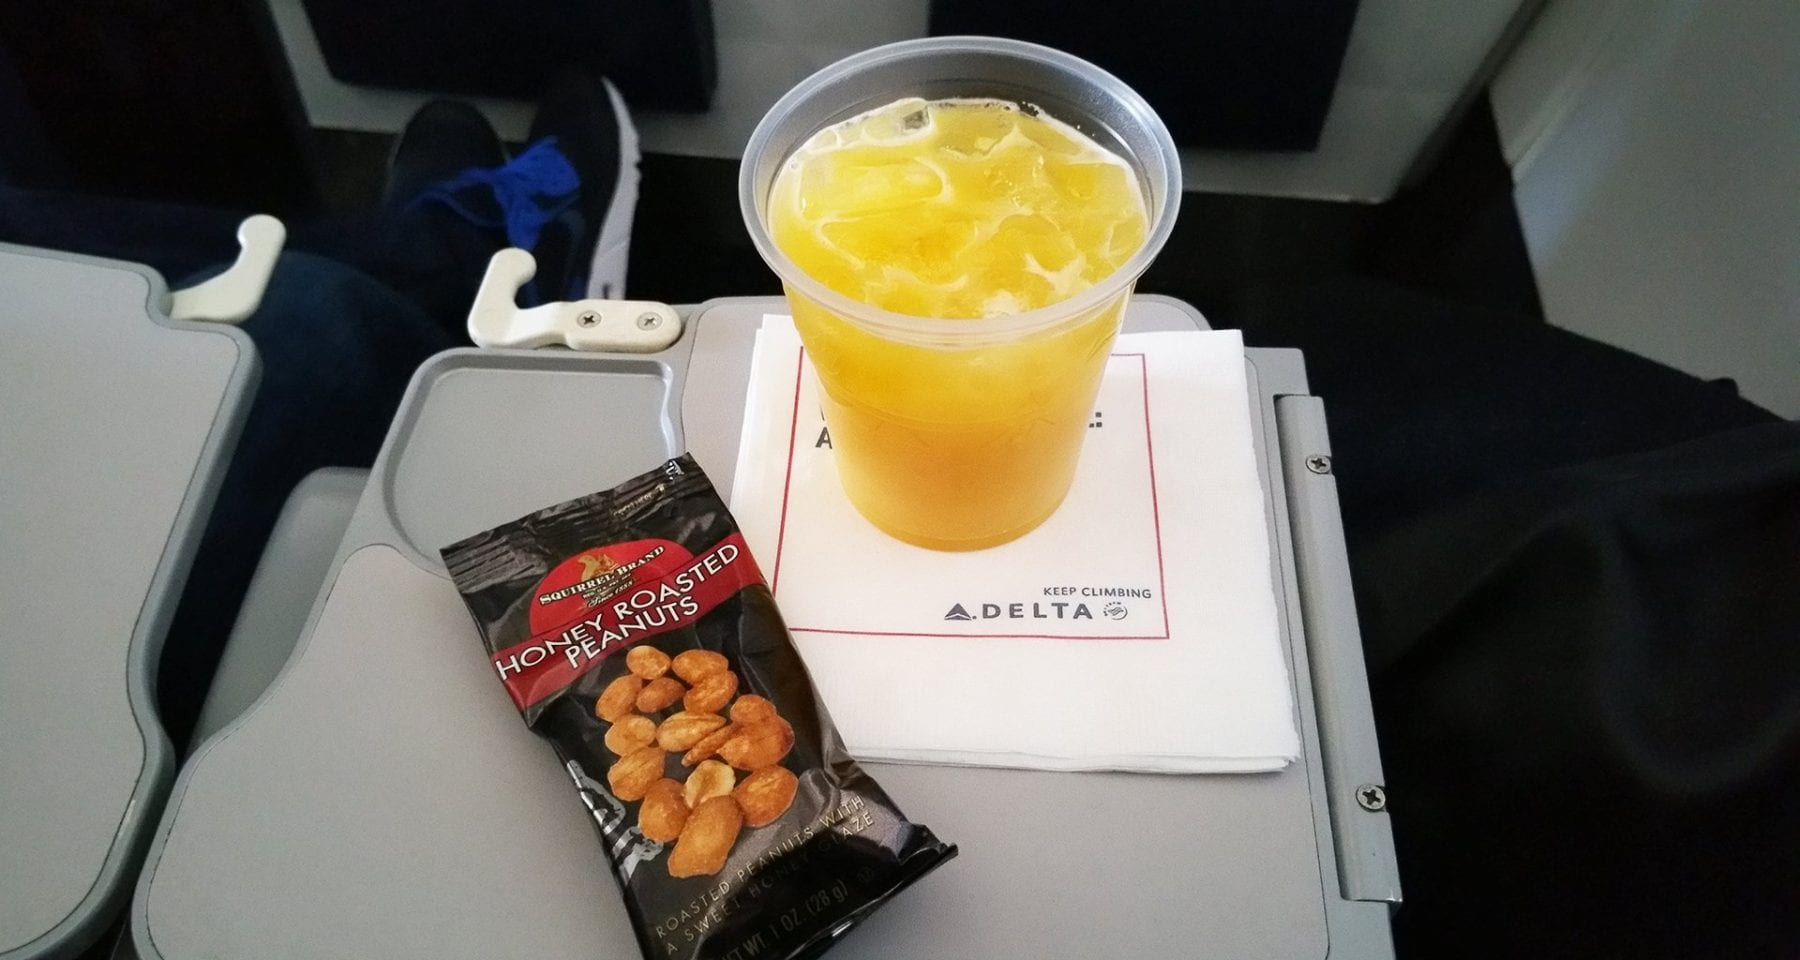 Delta airlines orange juice and nuts